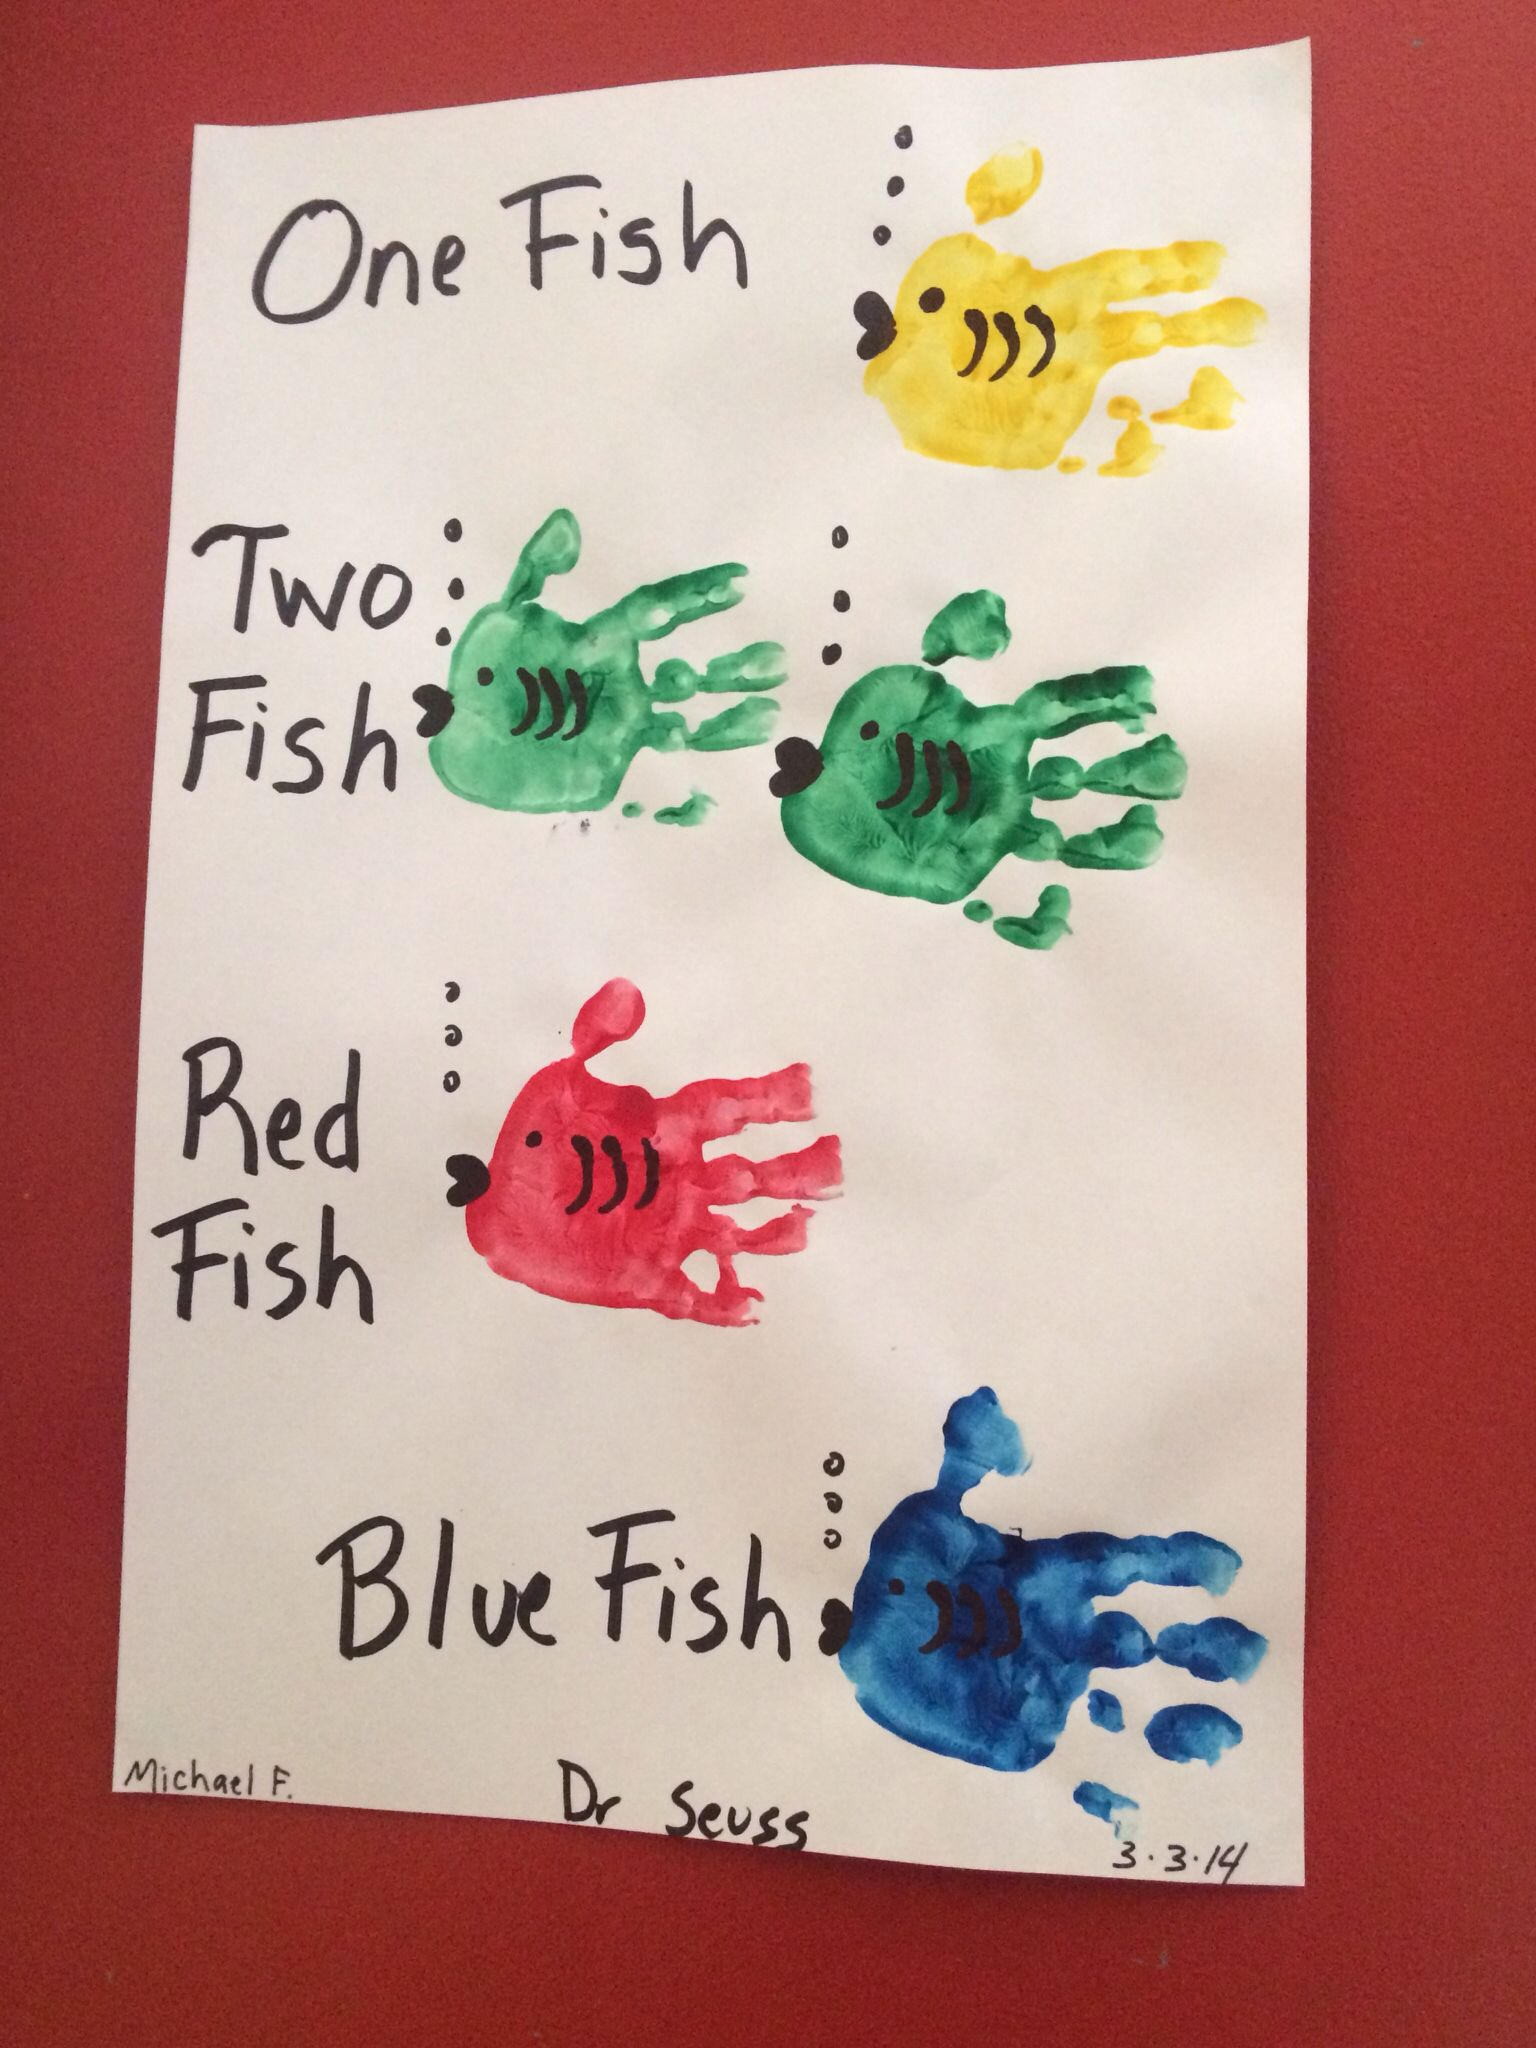 Dr Seuss Handprints One Fish Two Fish